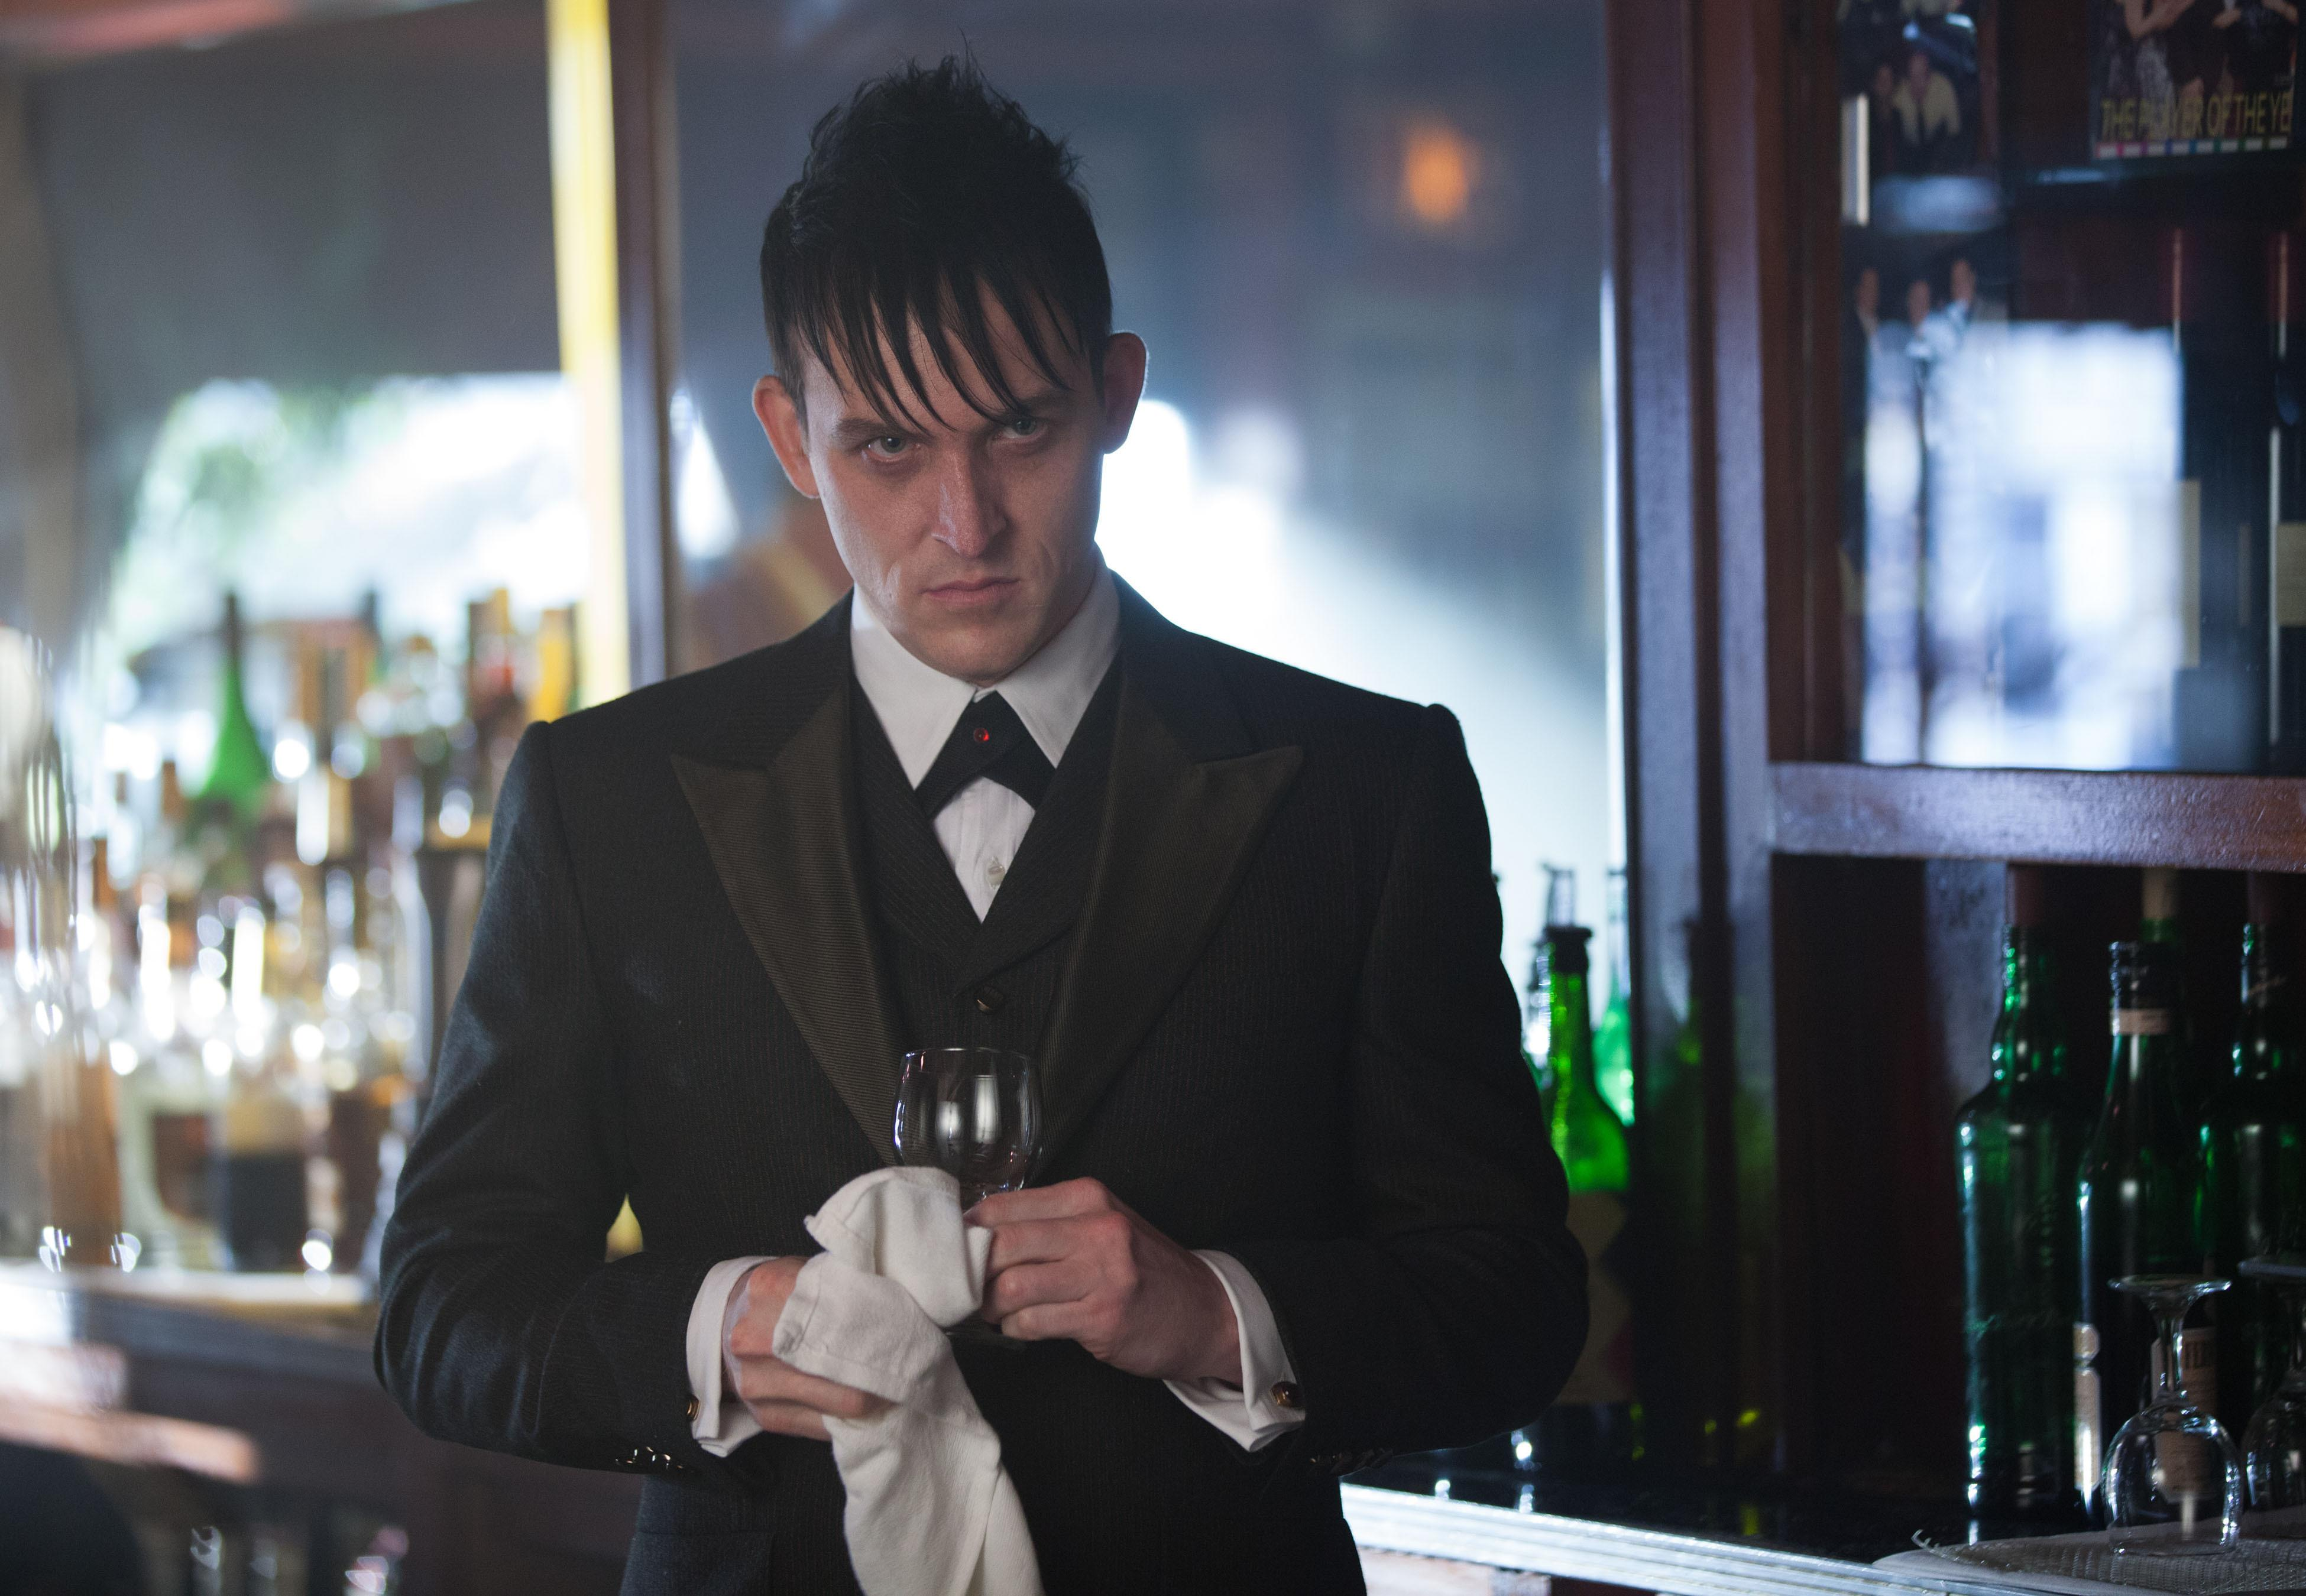 'Gotham' star Taylor delights fans with his Penguin villainy